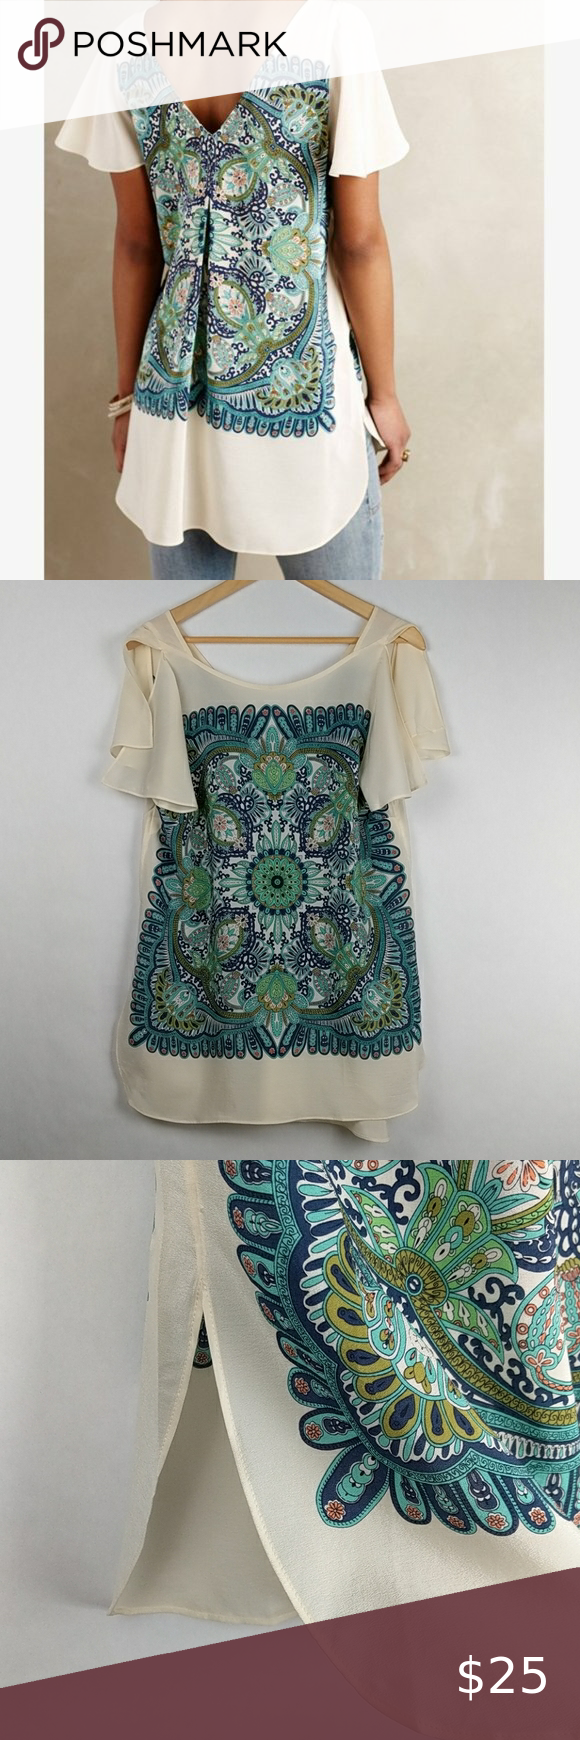 """Maeve Anthropologie Paisley Silk Tunic Blouse M Maeve for Anthropologie White silk tunic blouse with blue and green paisley design on front and back Scoop neck front, v-neck back Loose, ruffle sleeves Slit on both sides of hem Small hole on back of left sleeve, see last photo for details Size Medium  Approximate Measurements Laying Flat Pit to Pit: 19"""" Length: 29.5""""  A0429 Anthropologie Tops Blouses"""